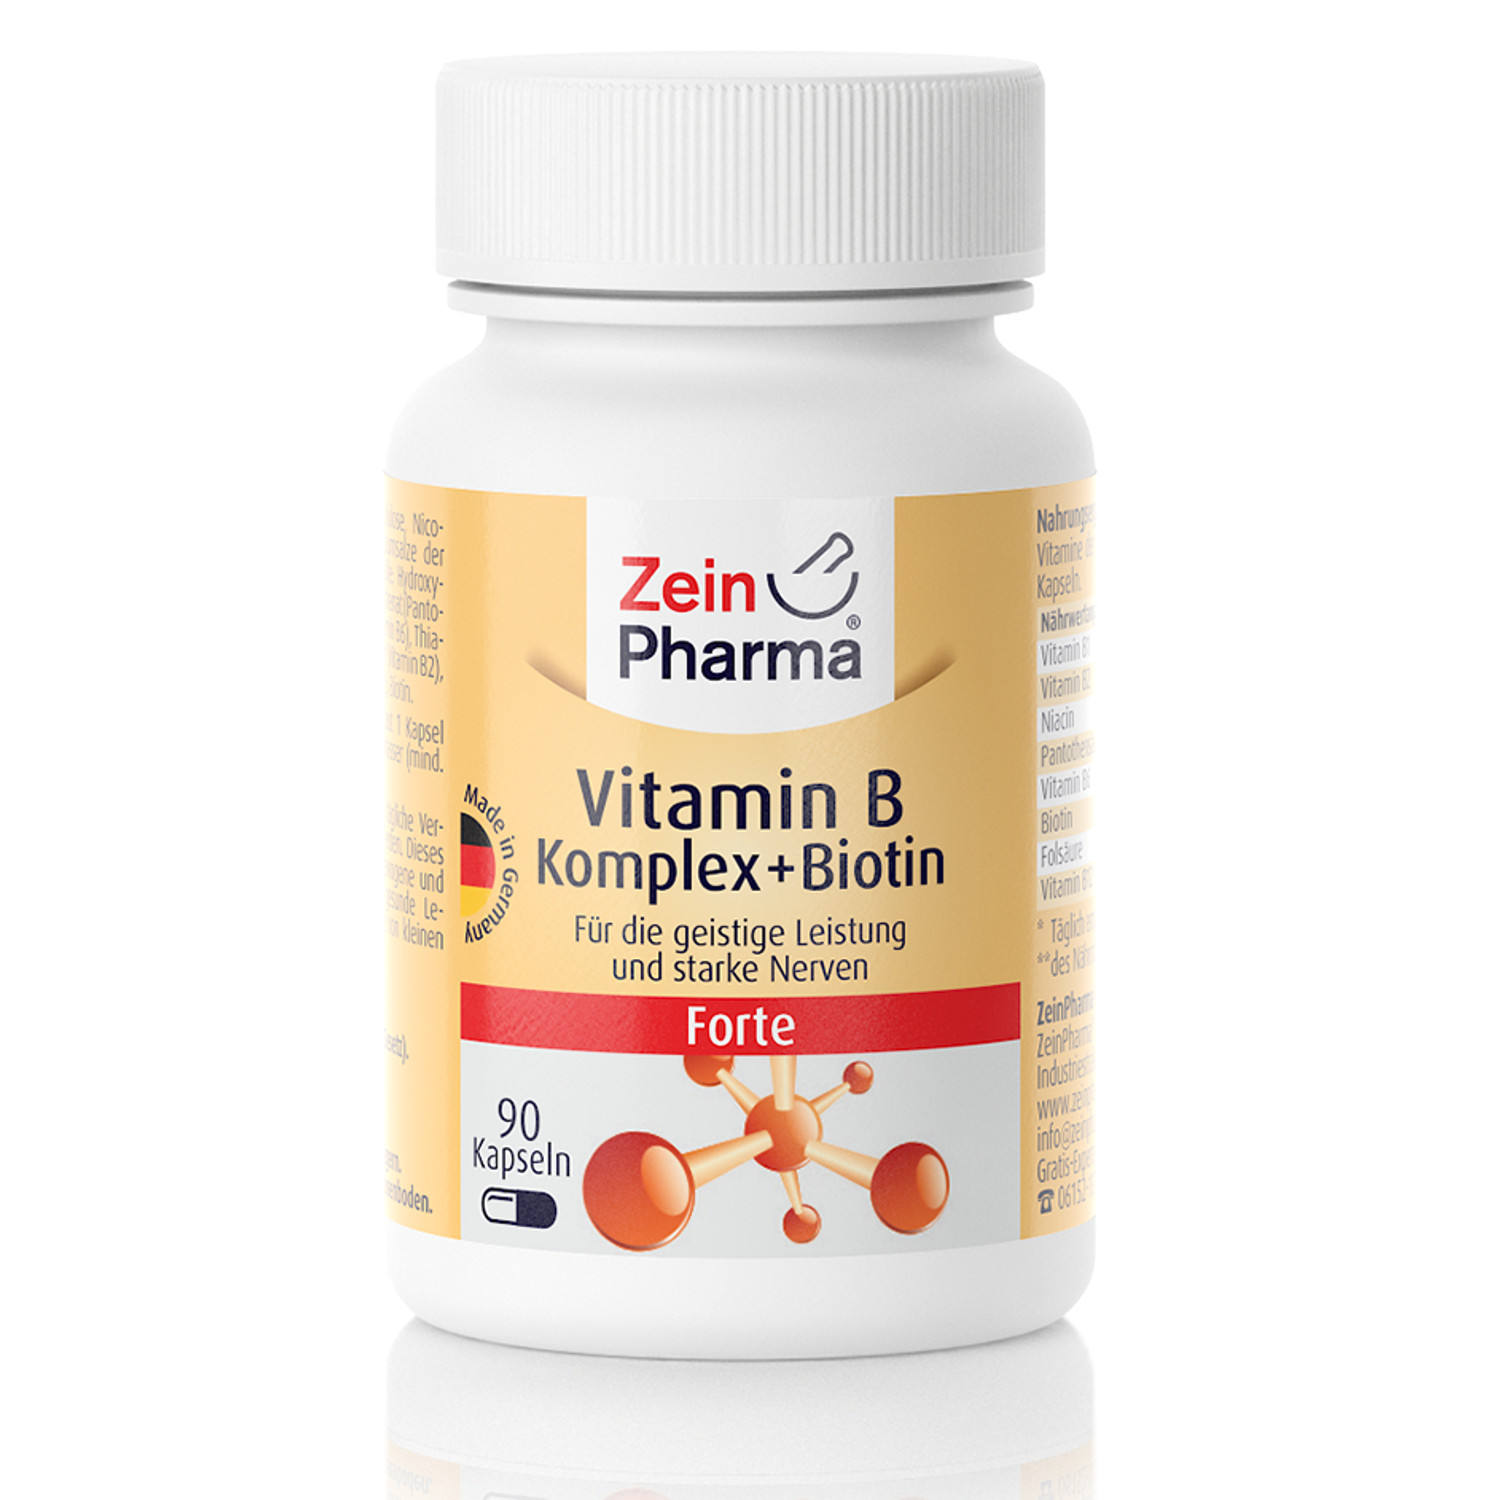 Vitamin B17 Komplex Reduce Weight Vitamin B Soft Capsule Healthy supplement